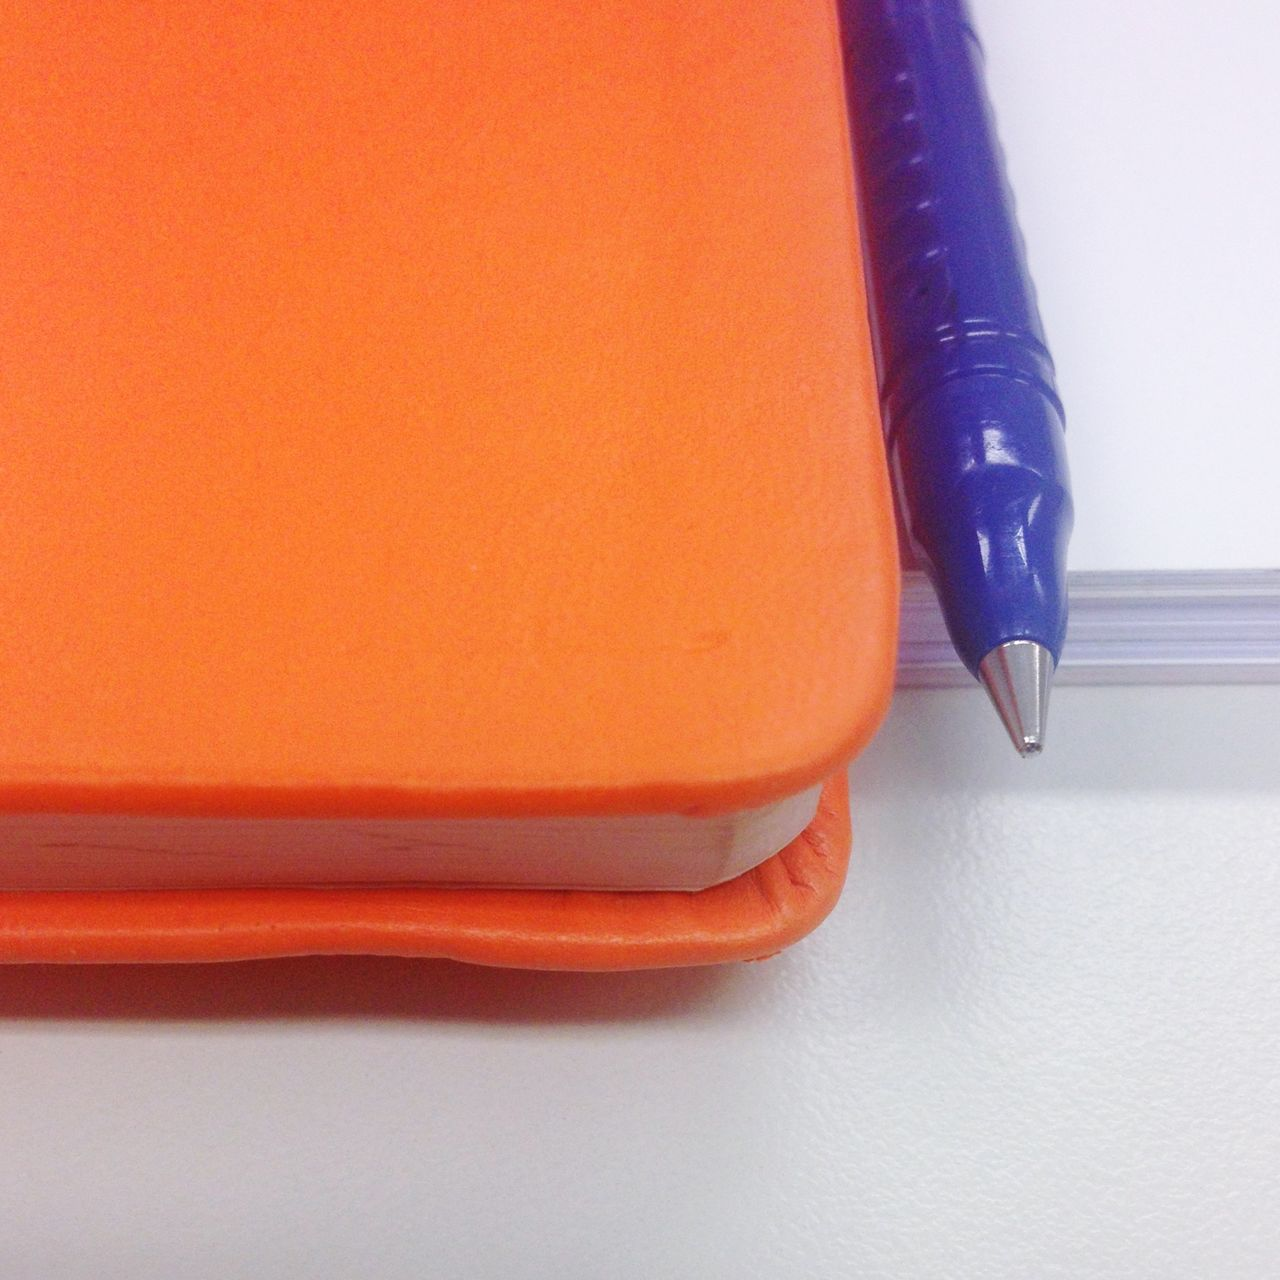 Office Office View Working Work Materials Orange Book Pen